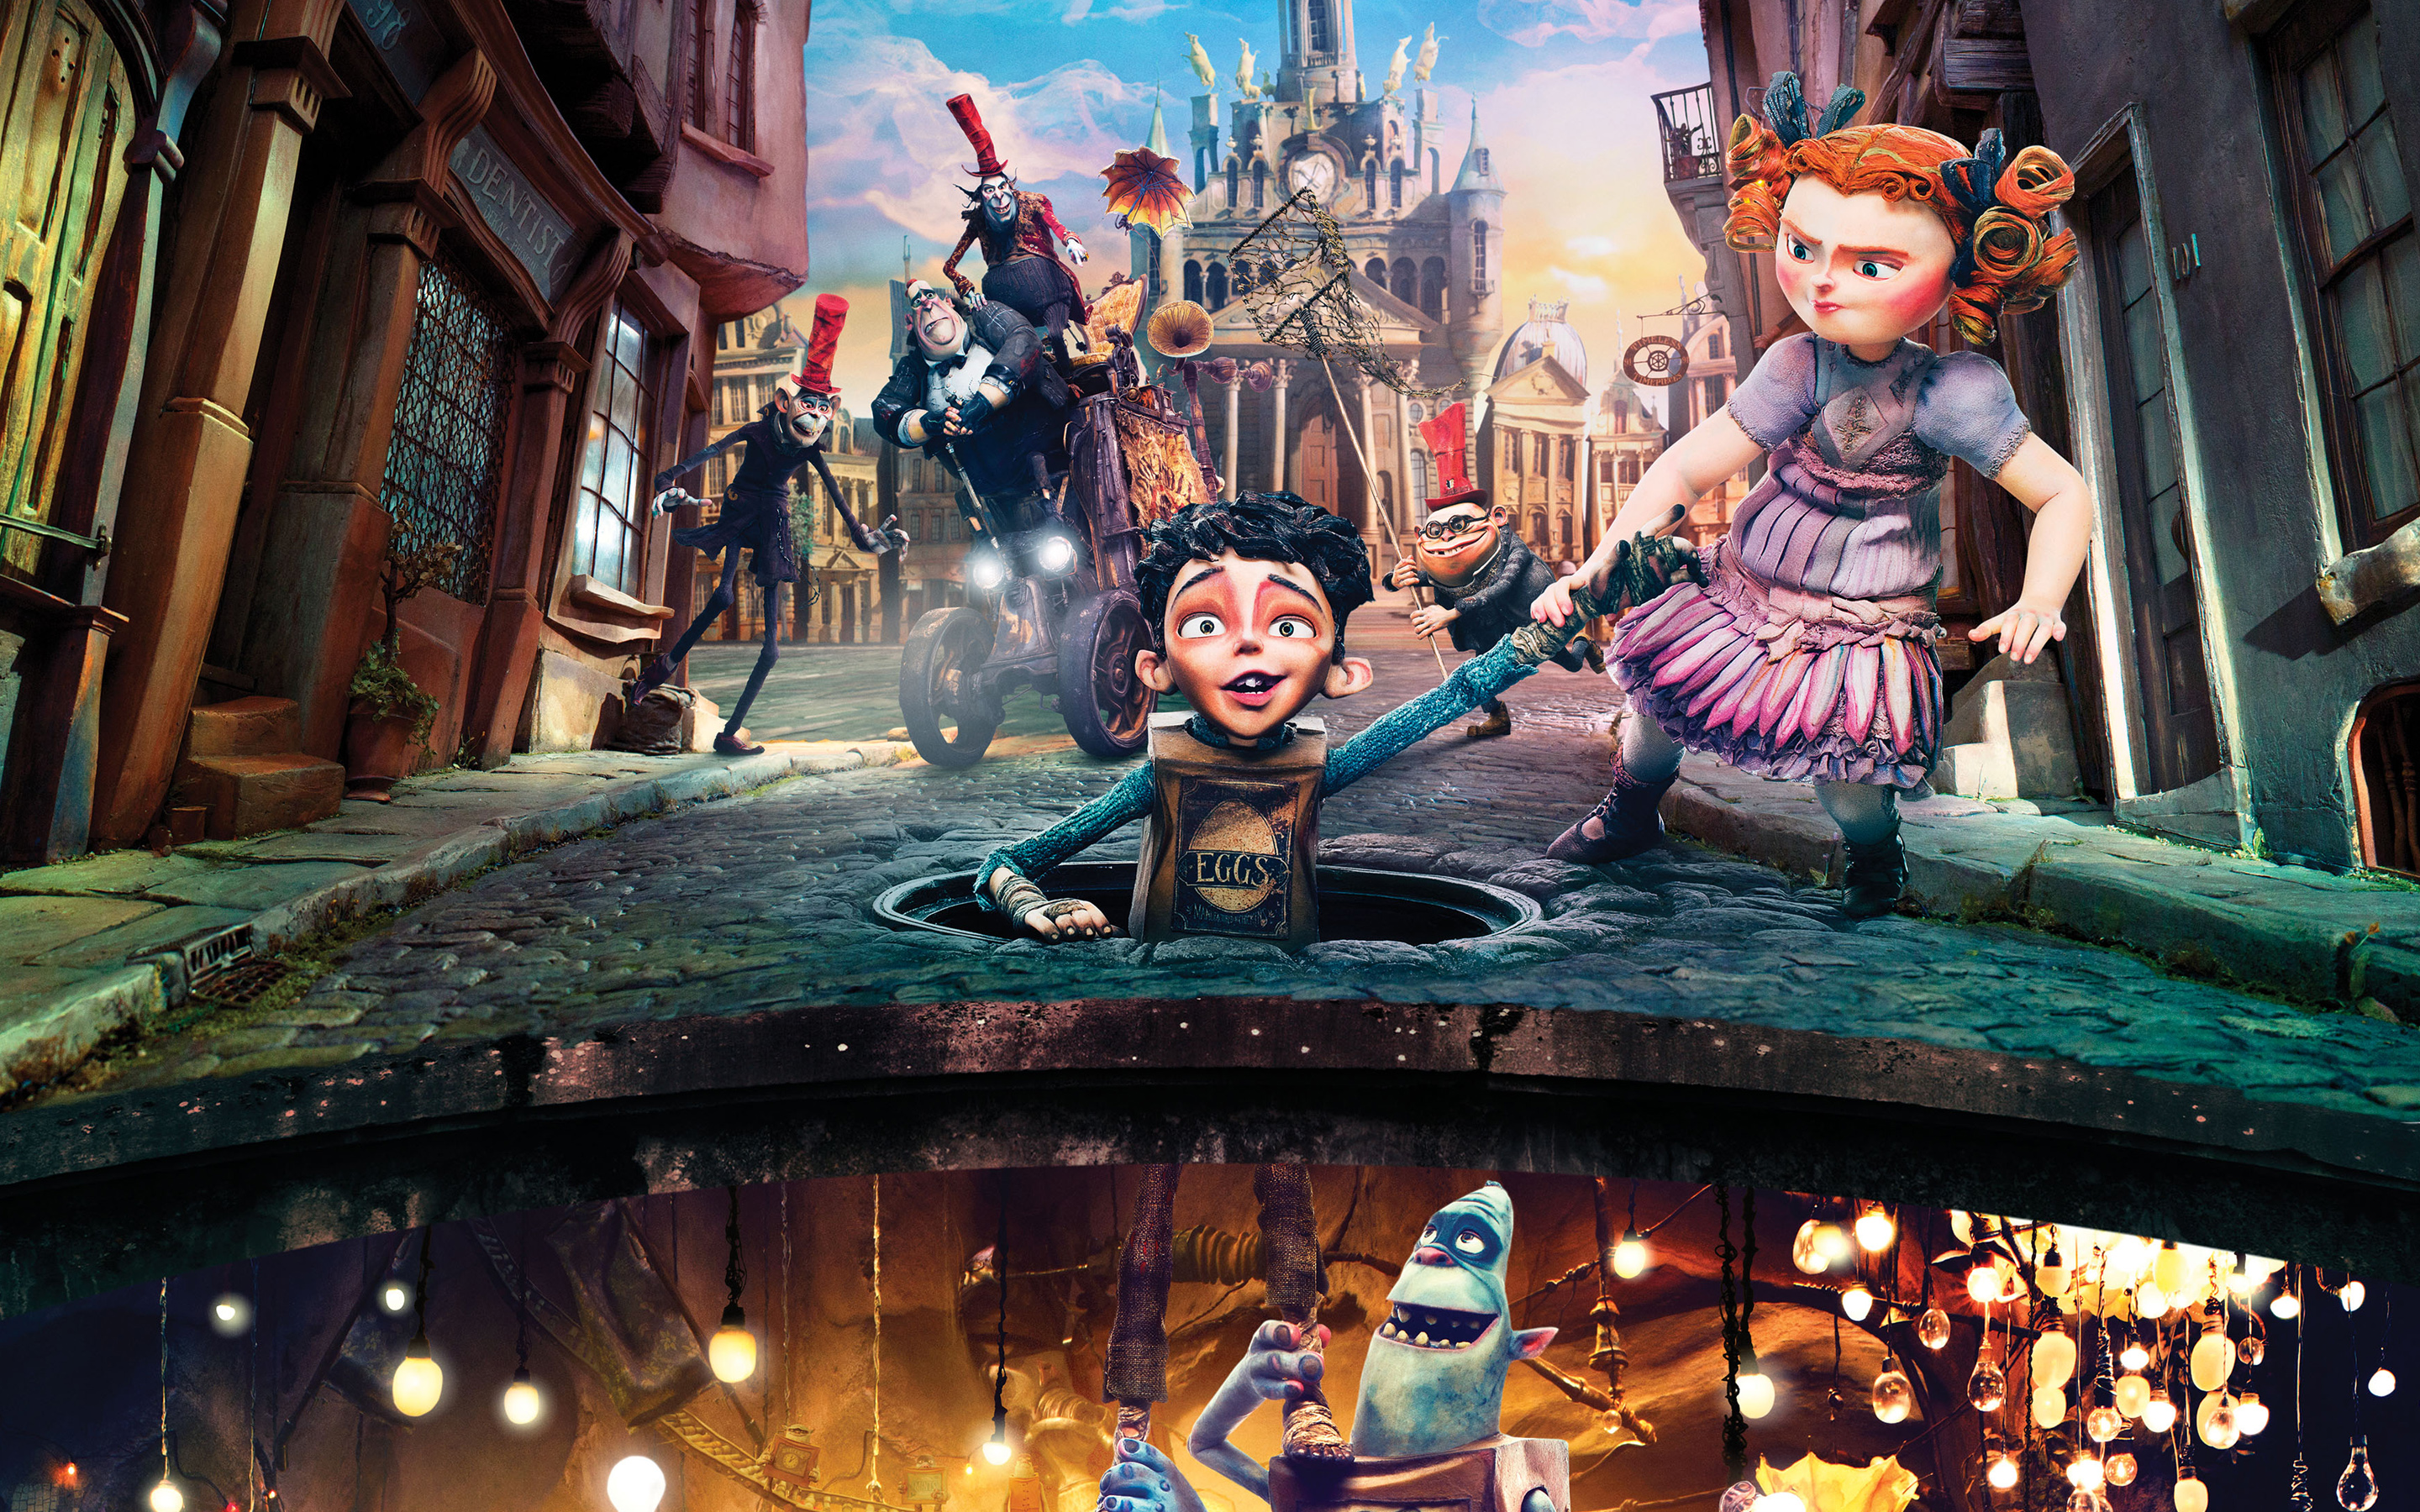 boxtrolls 4K wallpapers for your desktop or mobile screen and 2880x1800